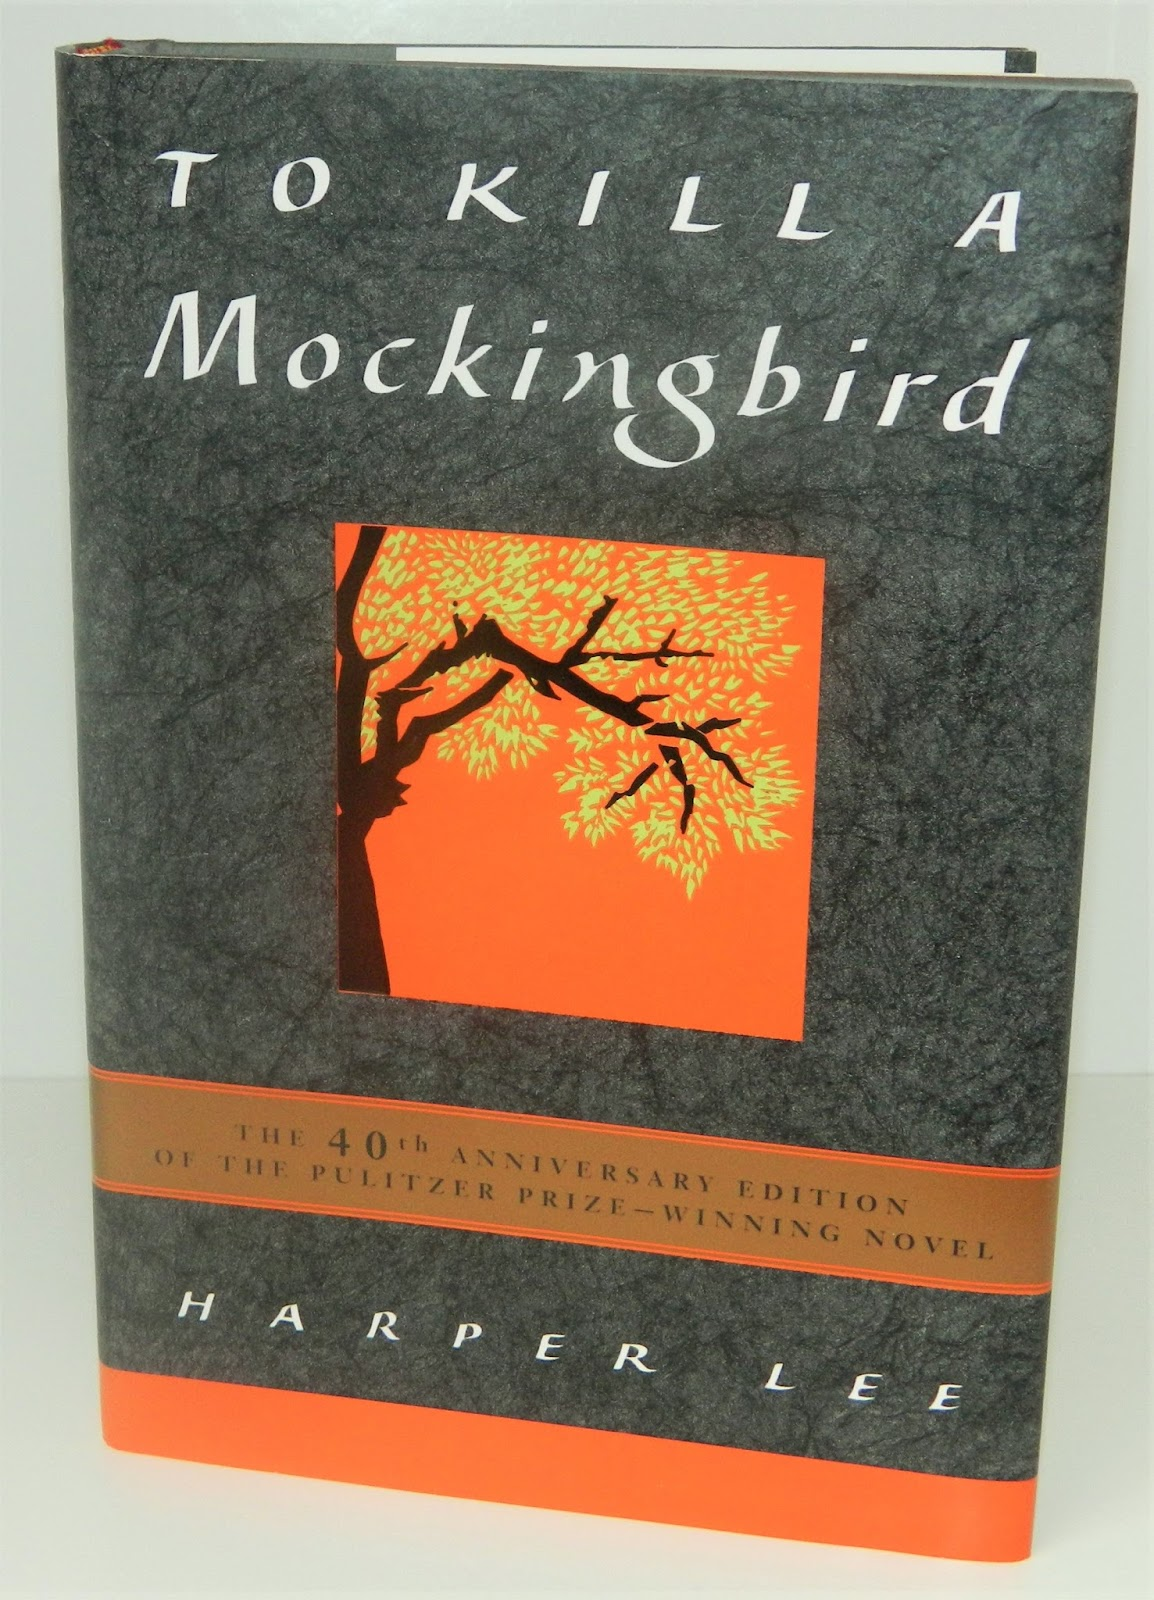 an examination of the book to kill a mockingbird by harper lee Harper lee's to kill a mockingbird has been revered as a poignant examination of race relations in our country and yes, it is uncomfortable.